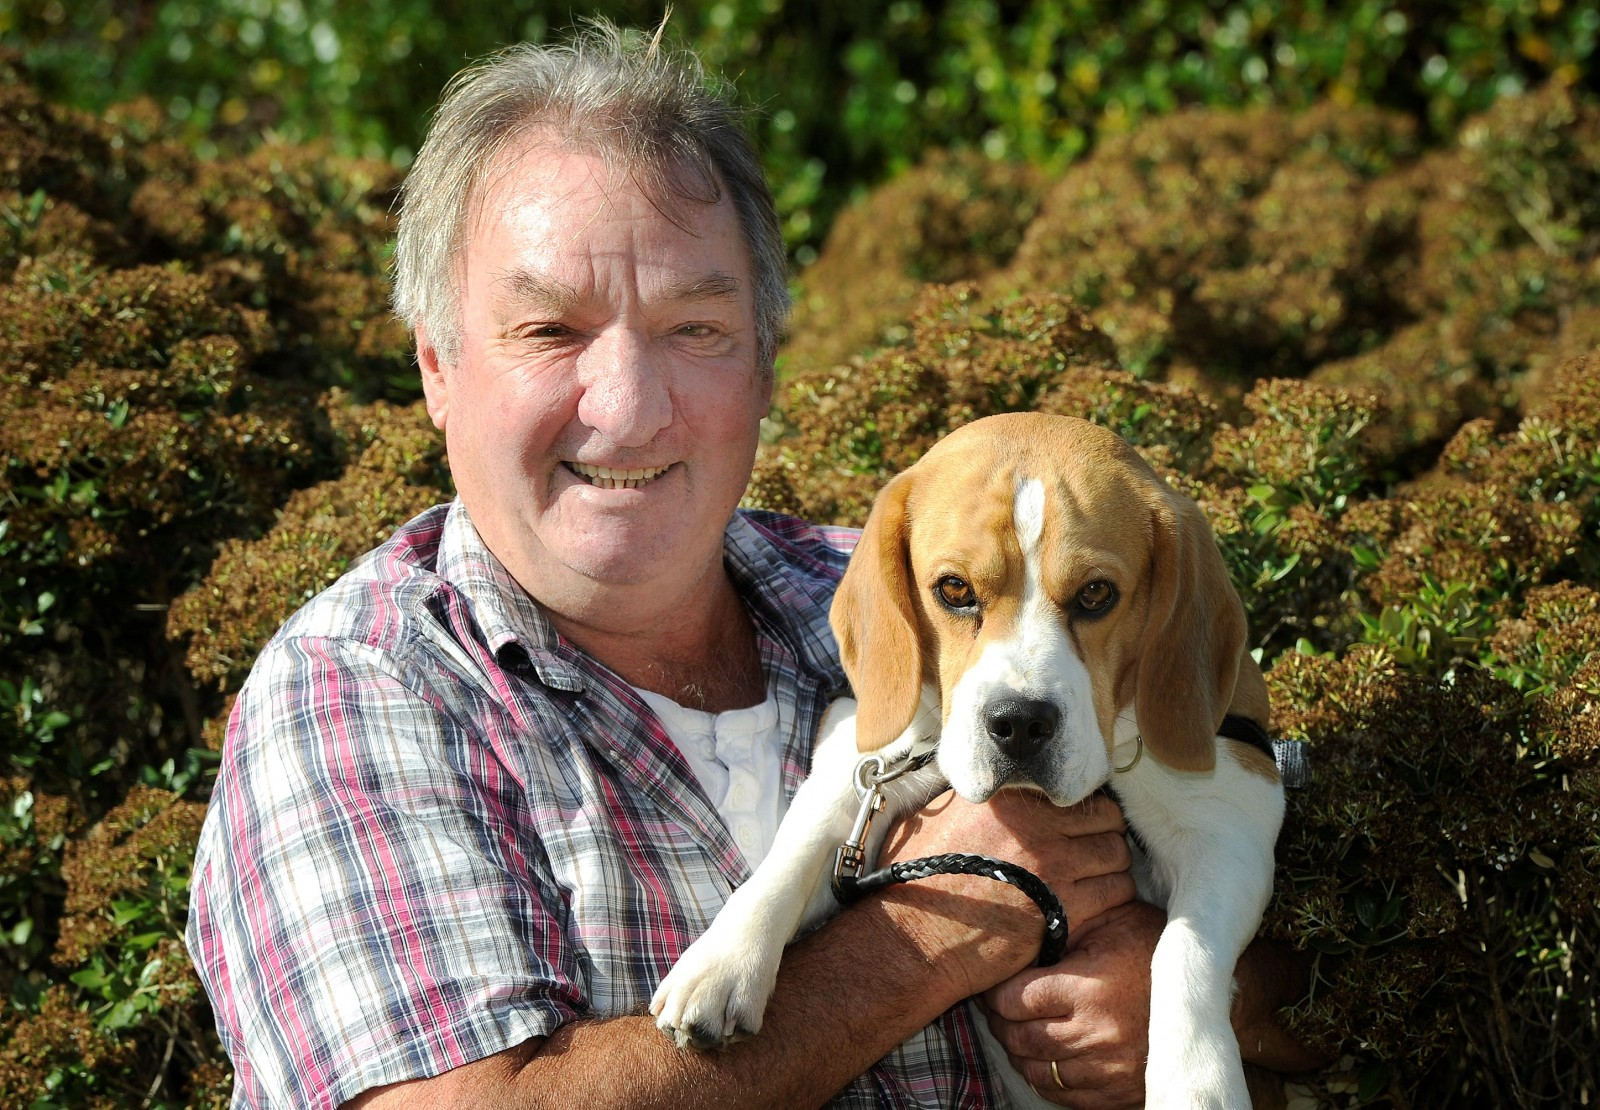 Pensioner reunited with his beloved pet after he was stolen during carjacking